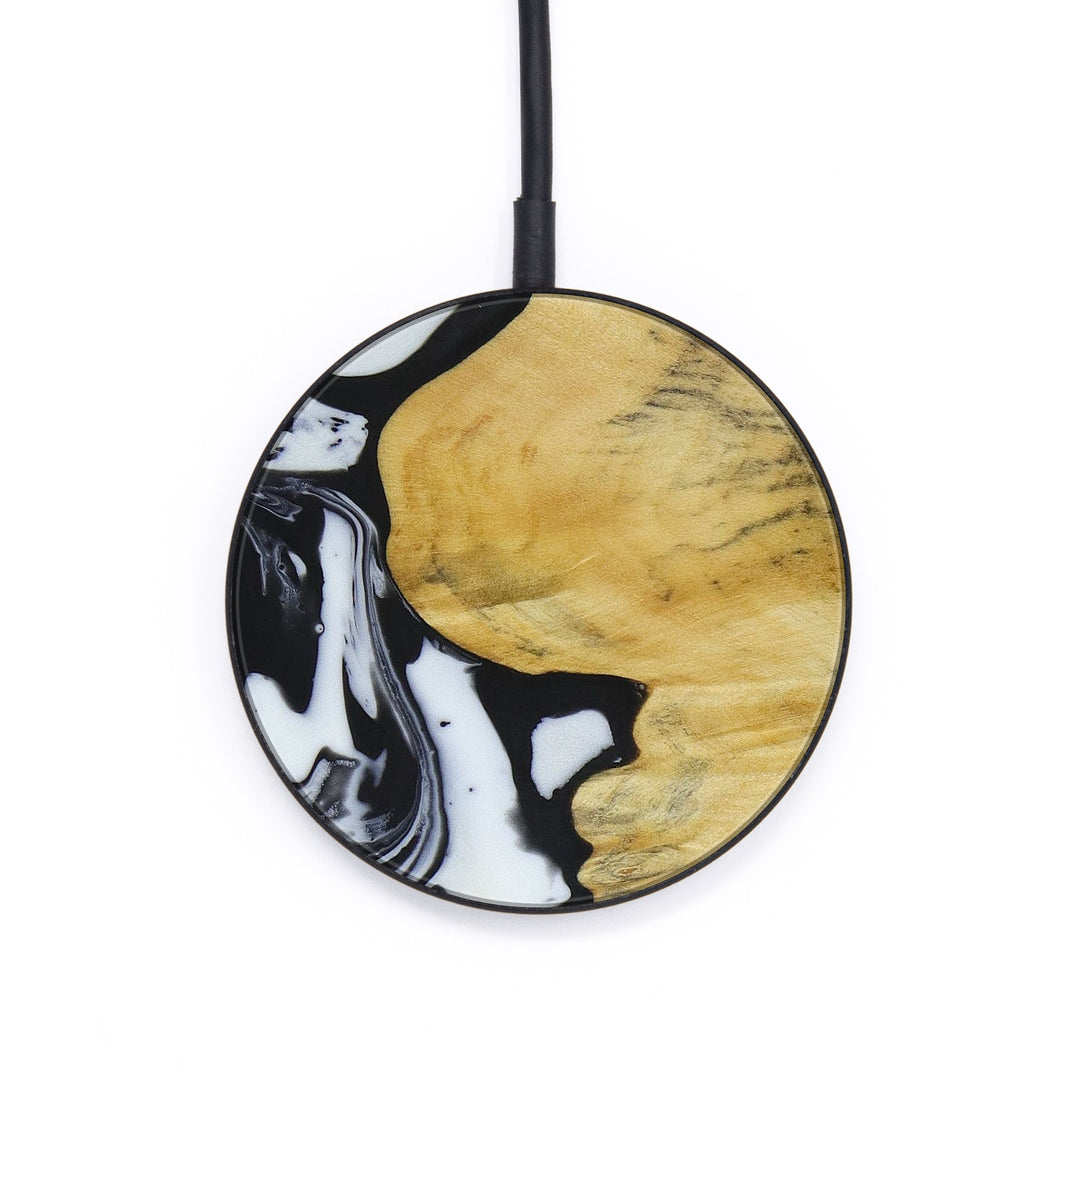 Circle Wood+Resin Wireless Charger - Kwan (Black & White, 403902)